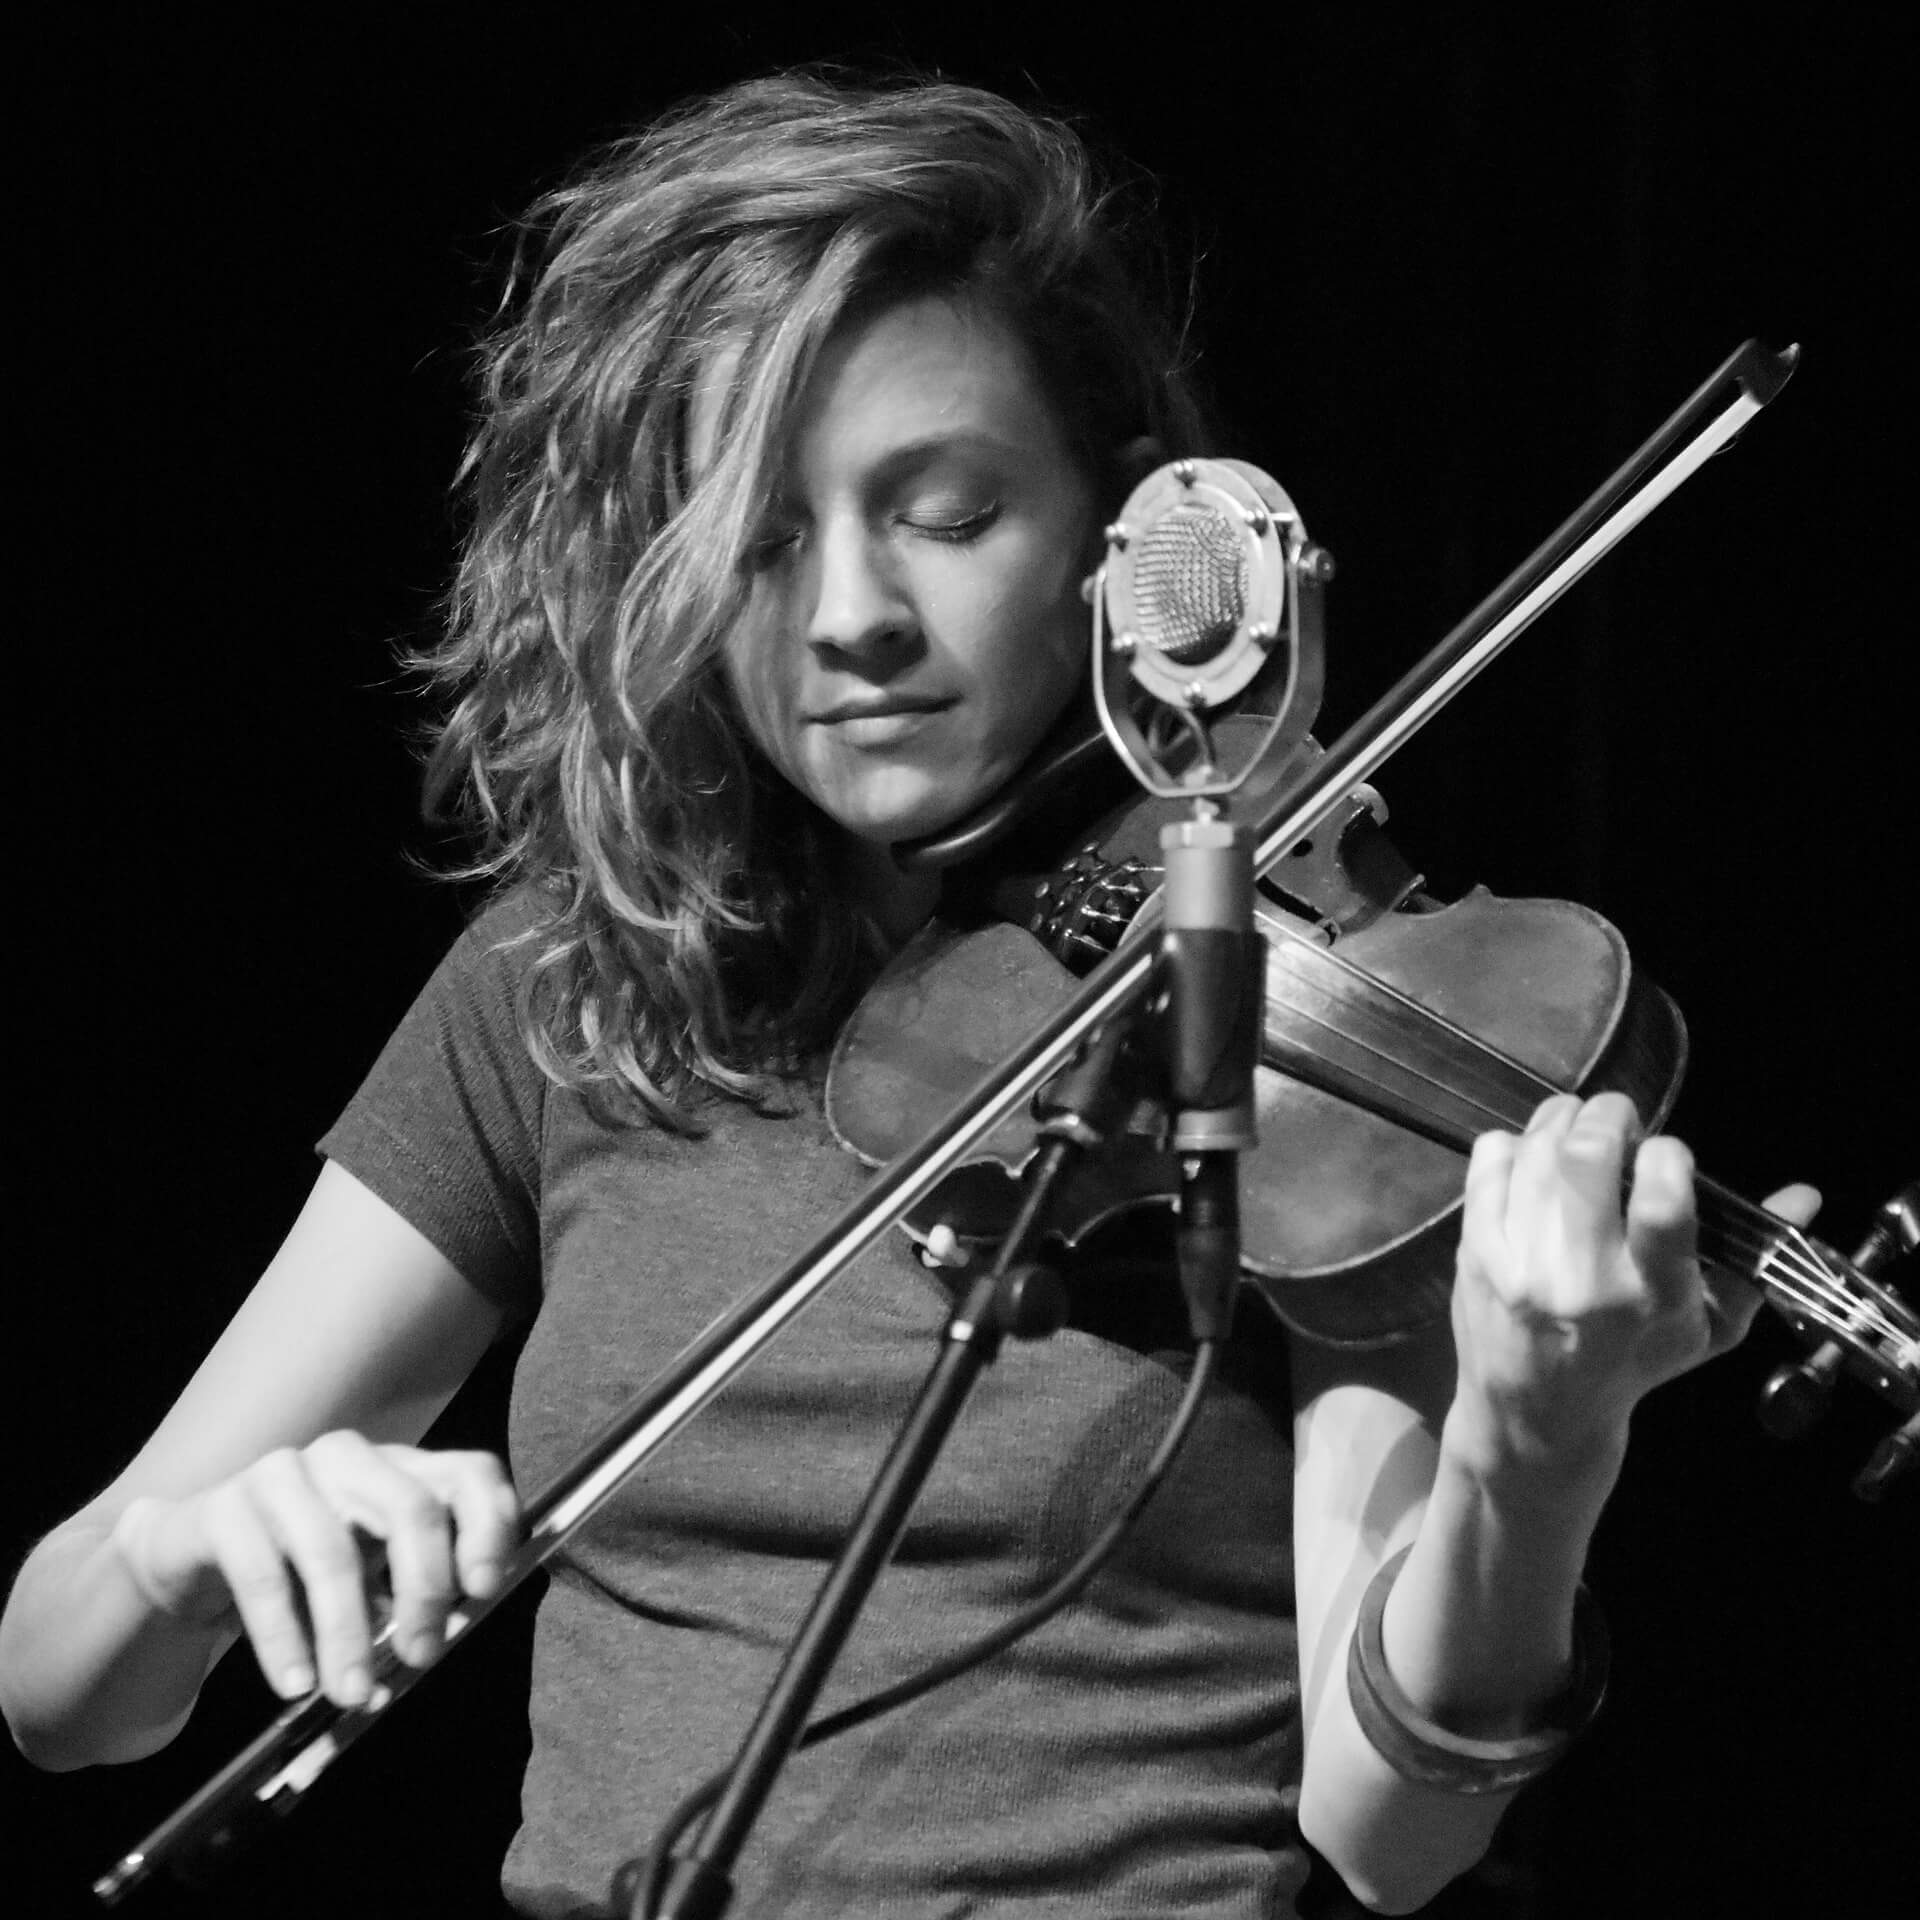 black and white photo of girl playing violin